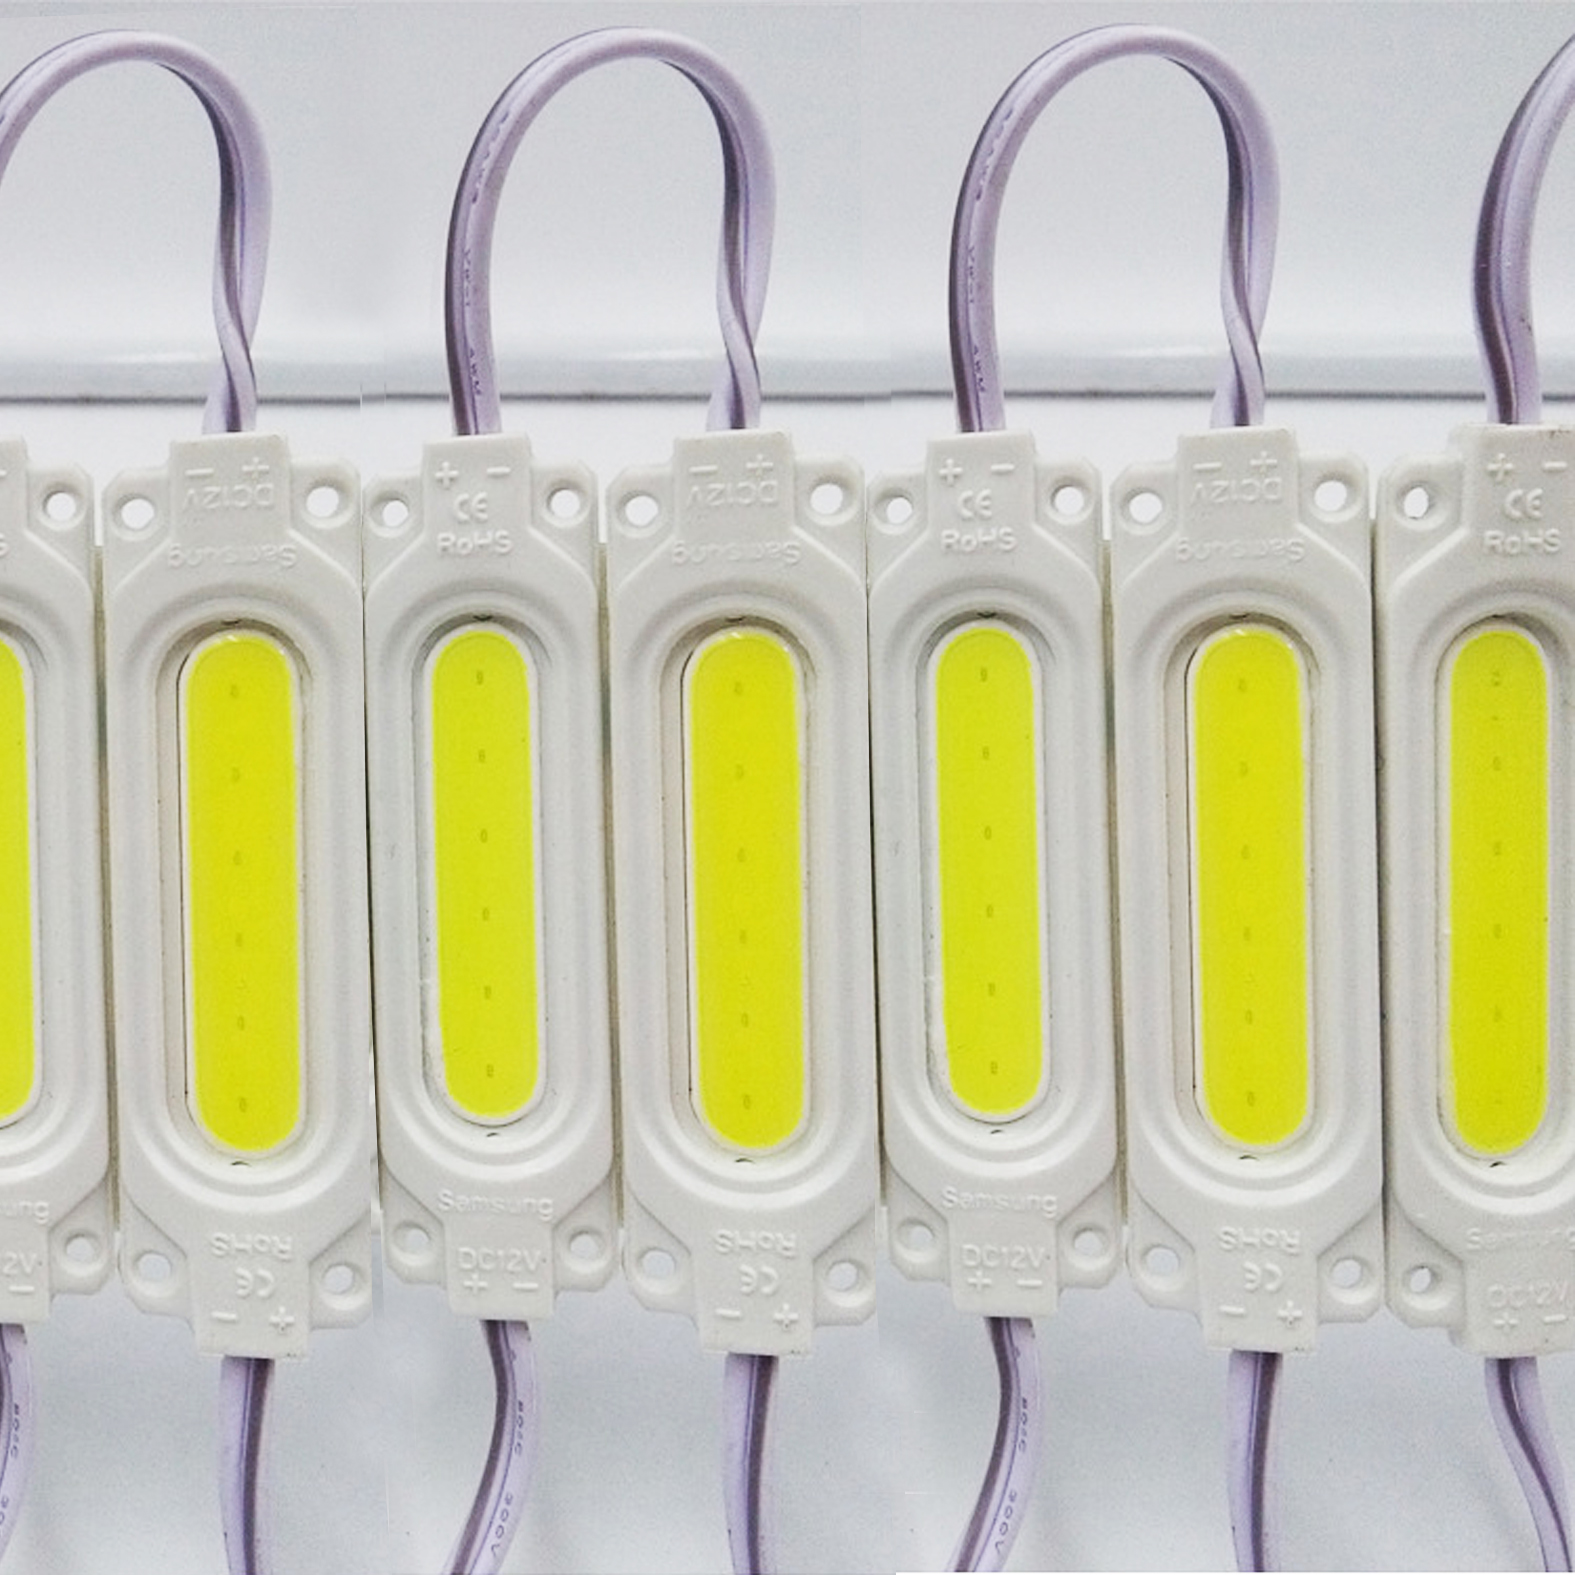 1000pcs DC <font><b>24V</b></font> COB <font><b>LED</b></font> <font><b>Modules</b></font> 2w Injection <font><b>module</b></font> Cold White Warm White Used For Advertising lamp bar light image